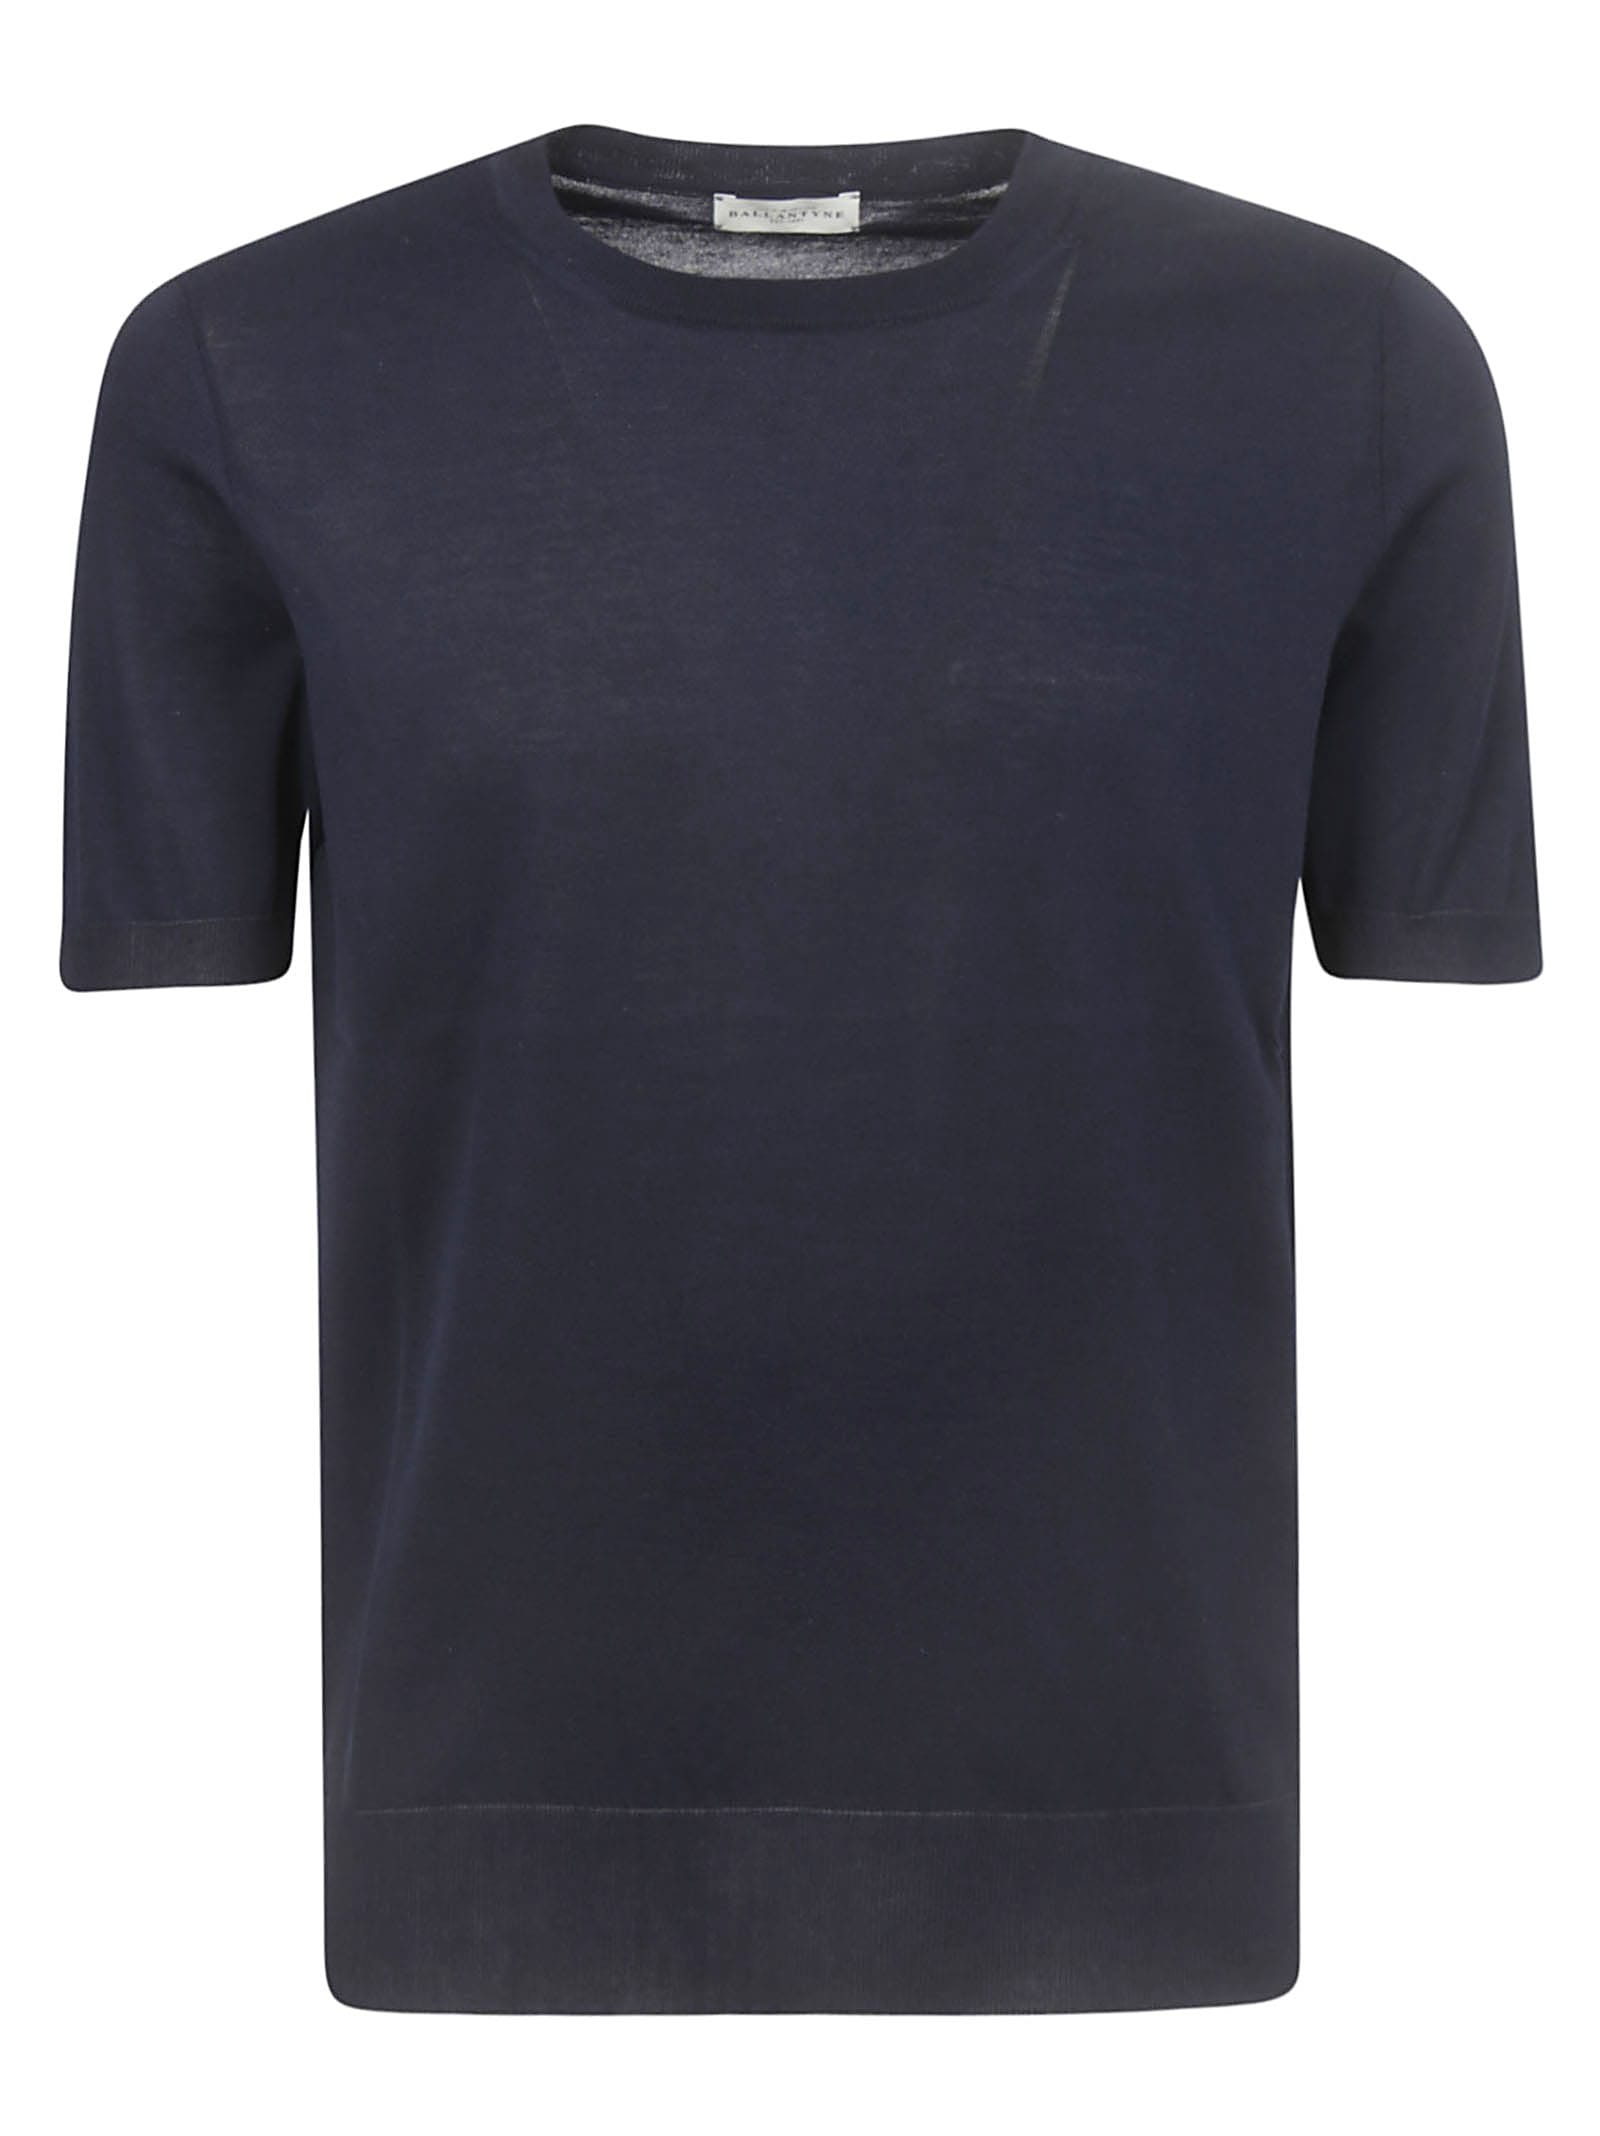 Ballantyne Knitted T-shirt